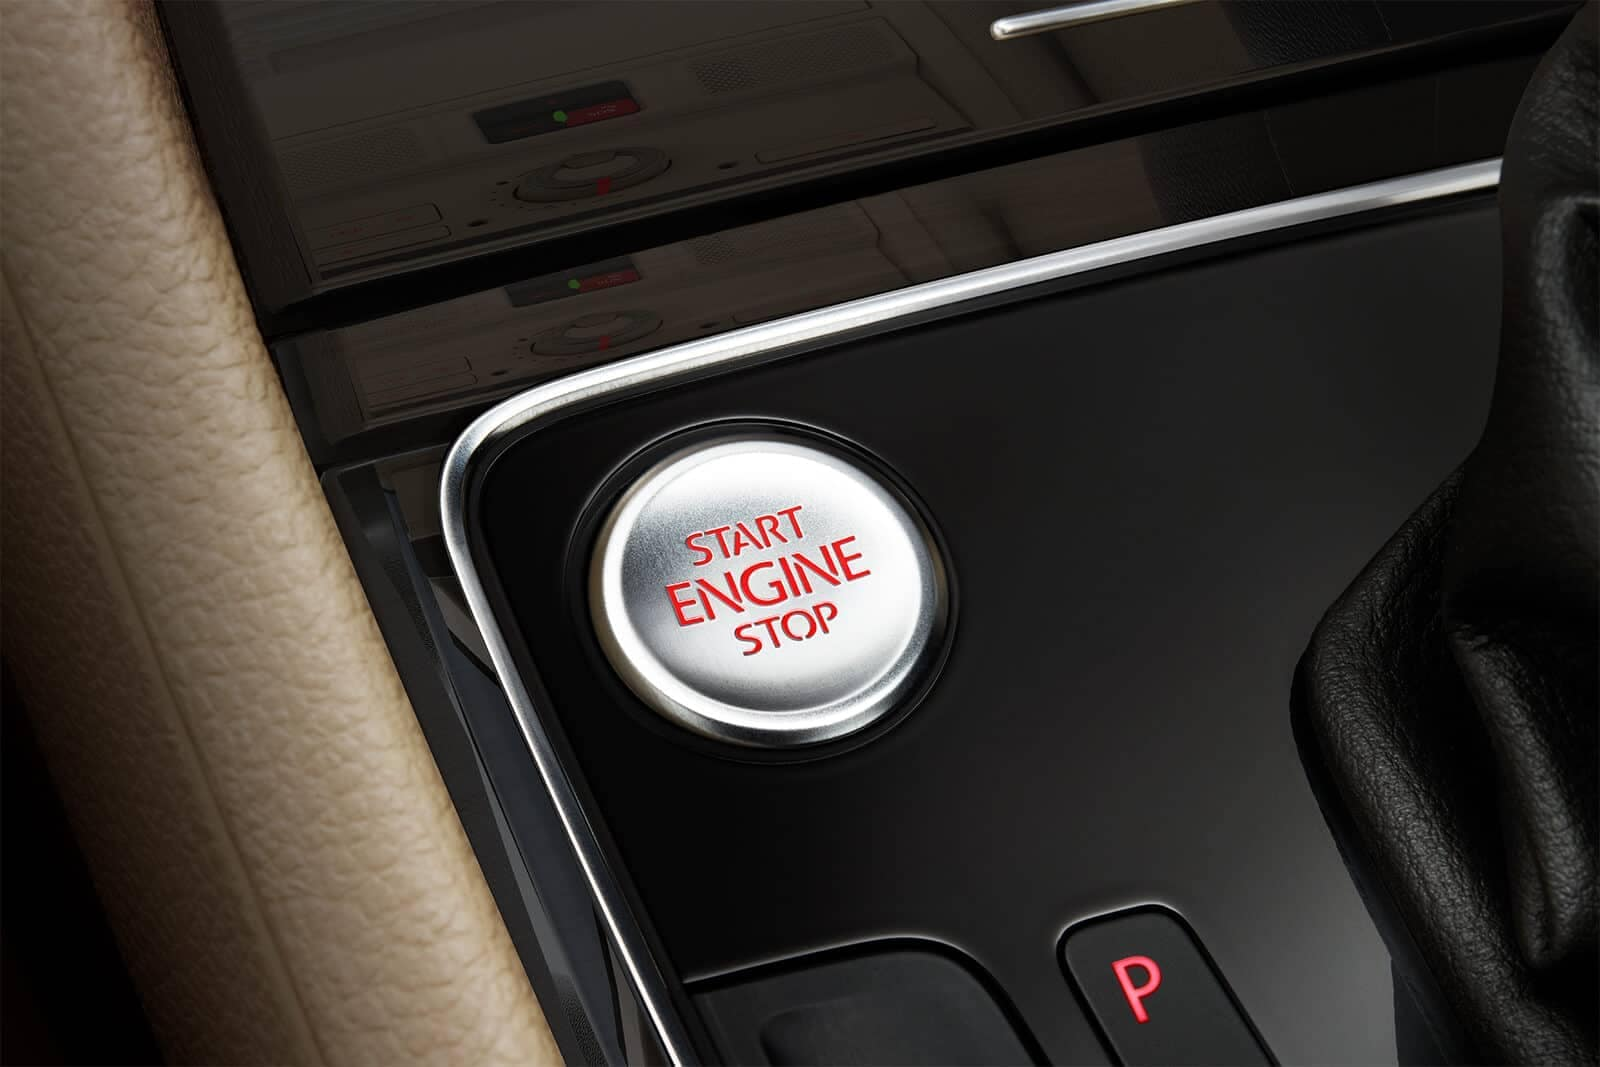 2019-Volkswagen-Passat-engine-button